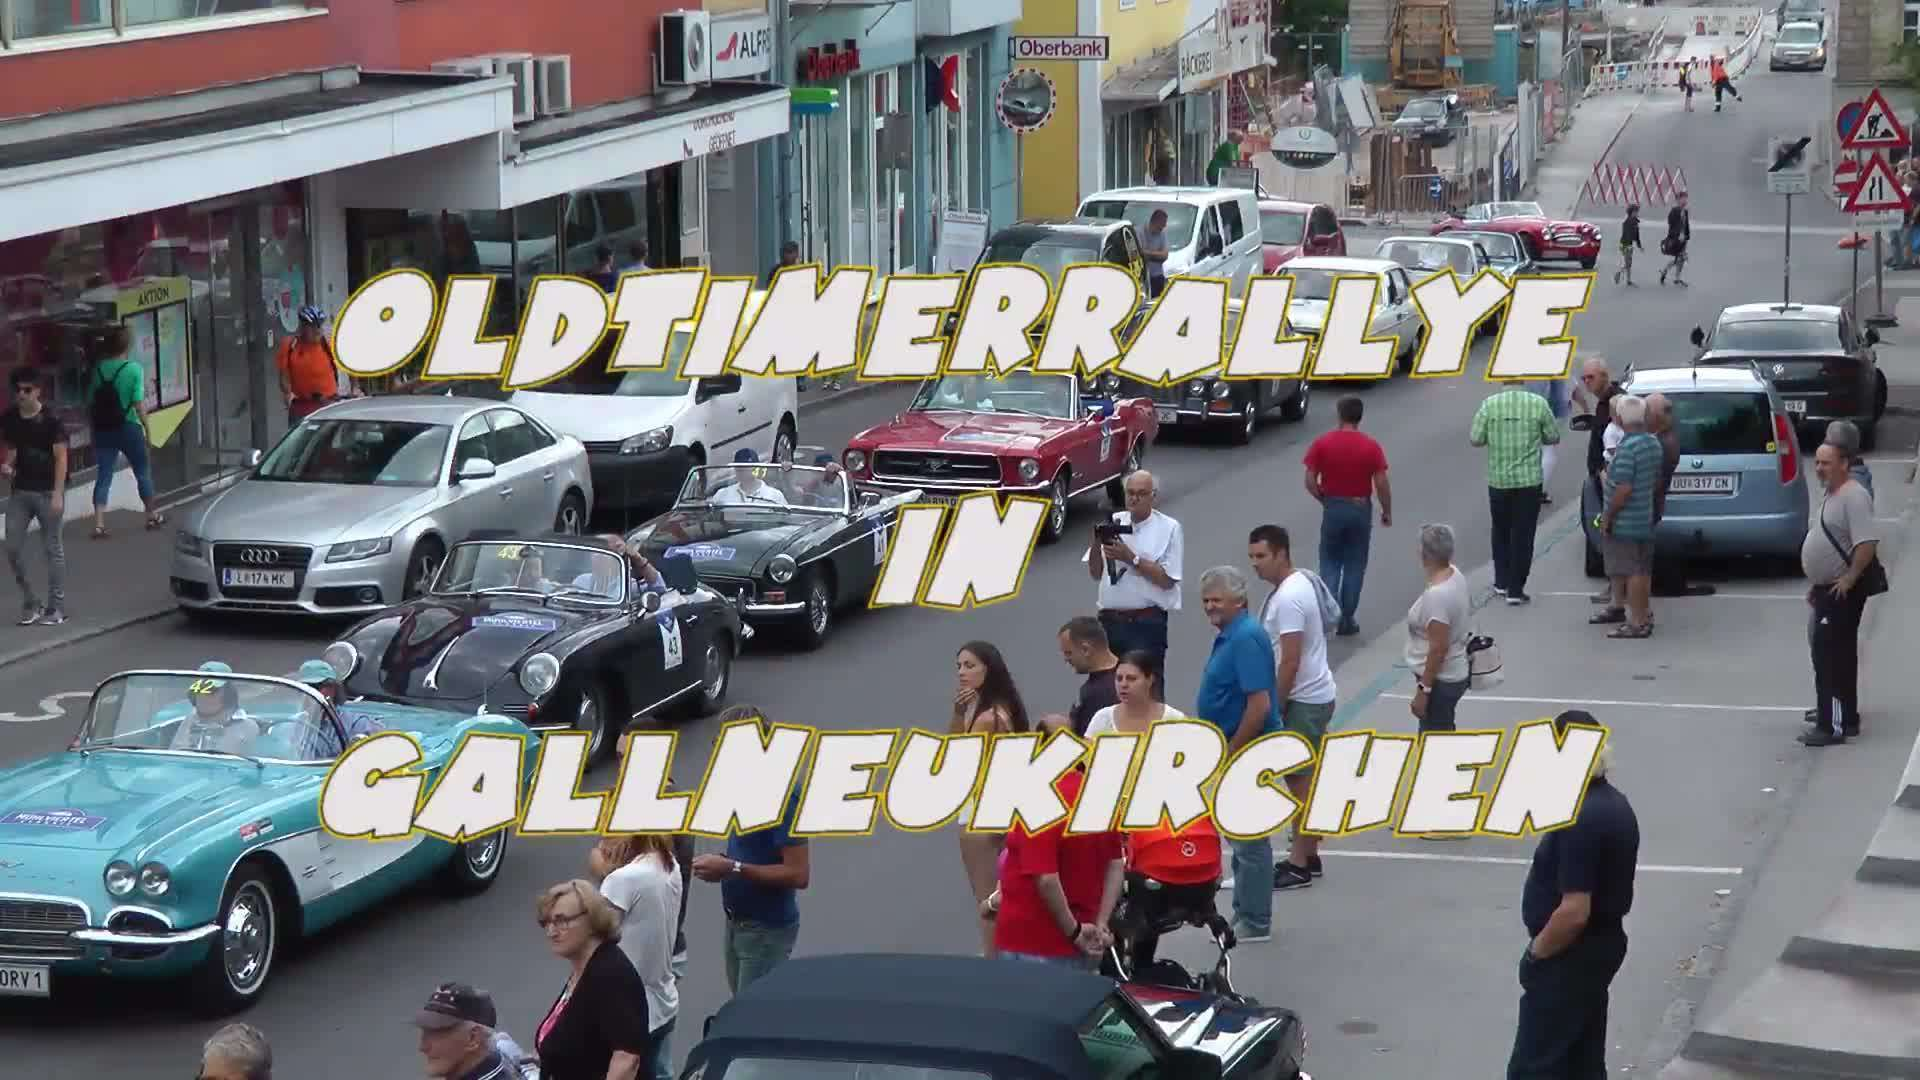 Oldtimerrallye in Gallneukirchen